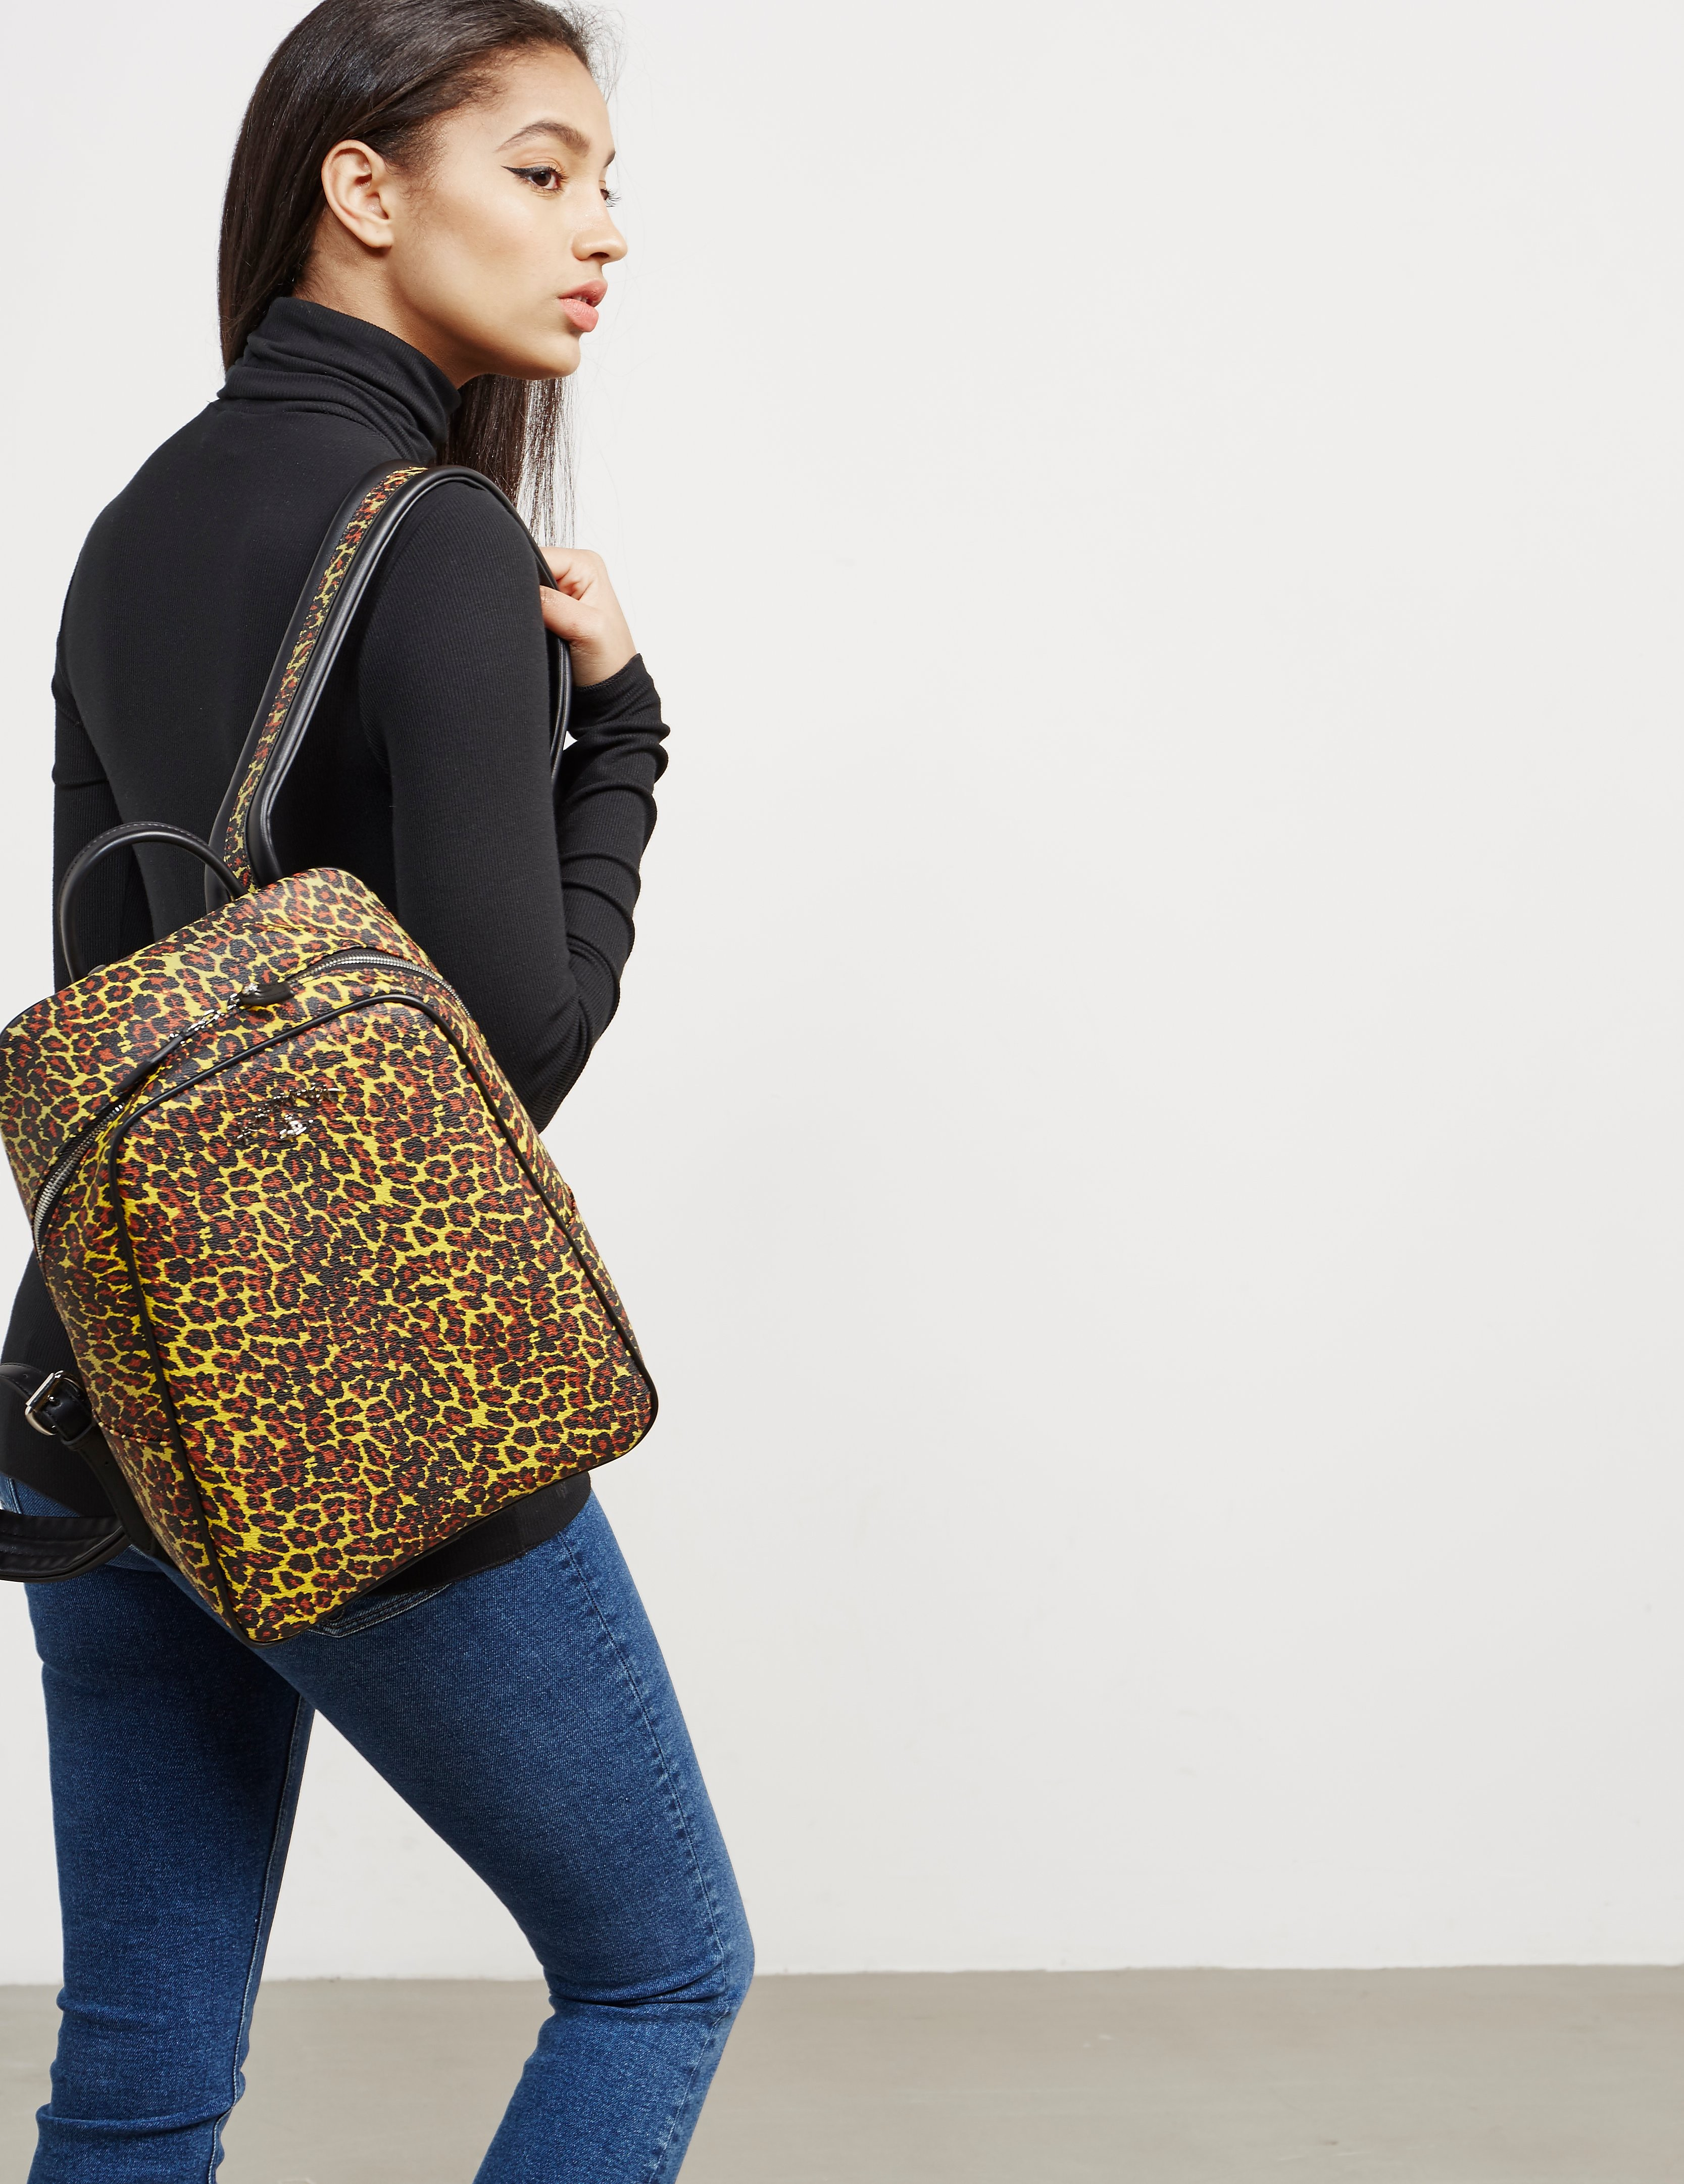 Vivienne Westwood Anglomania Leopard Backpack